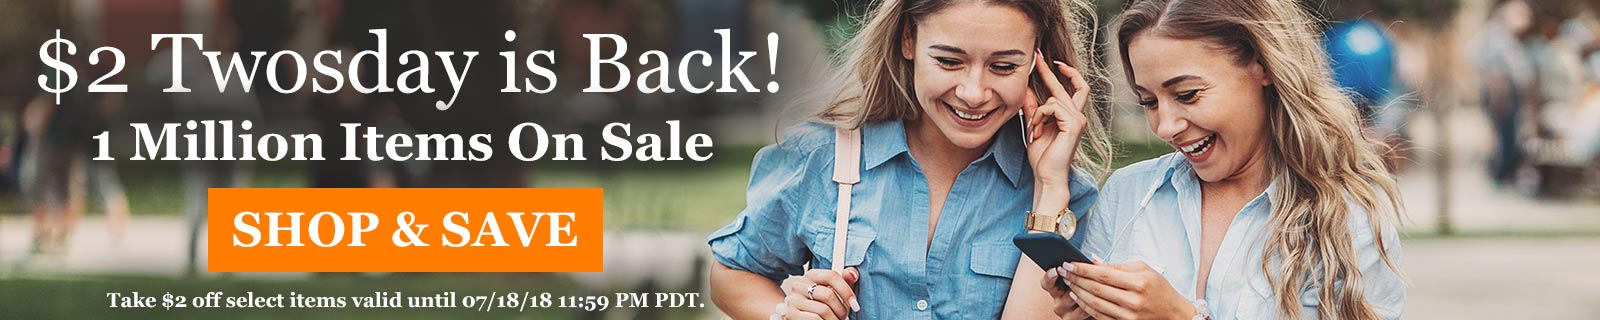 $2 Twosday is Back! 1 Million Items On Sale SHOP & SAVE